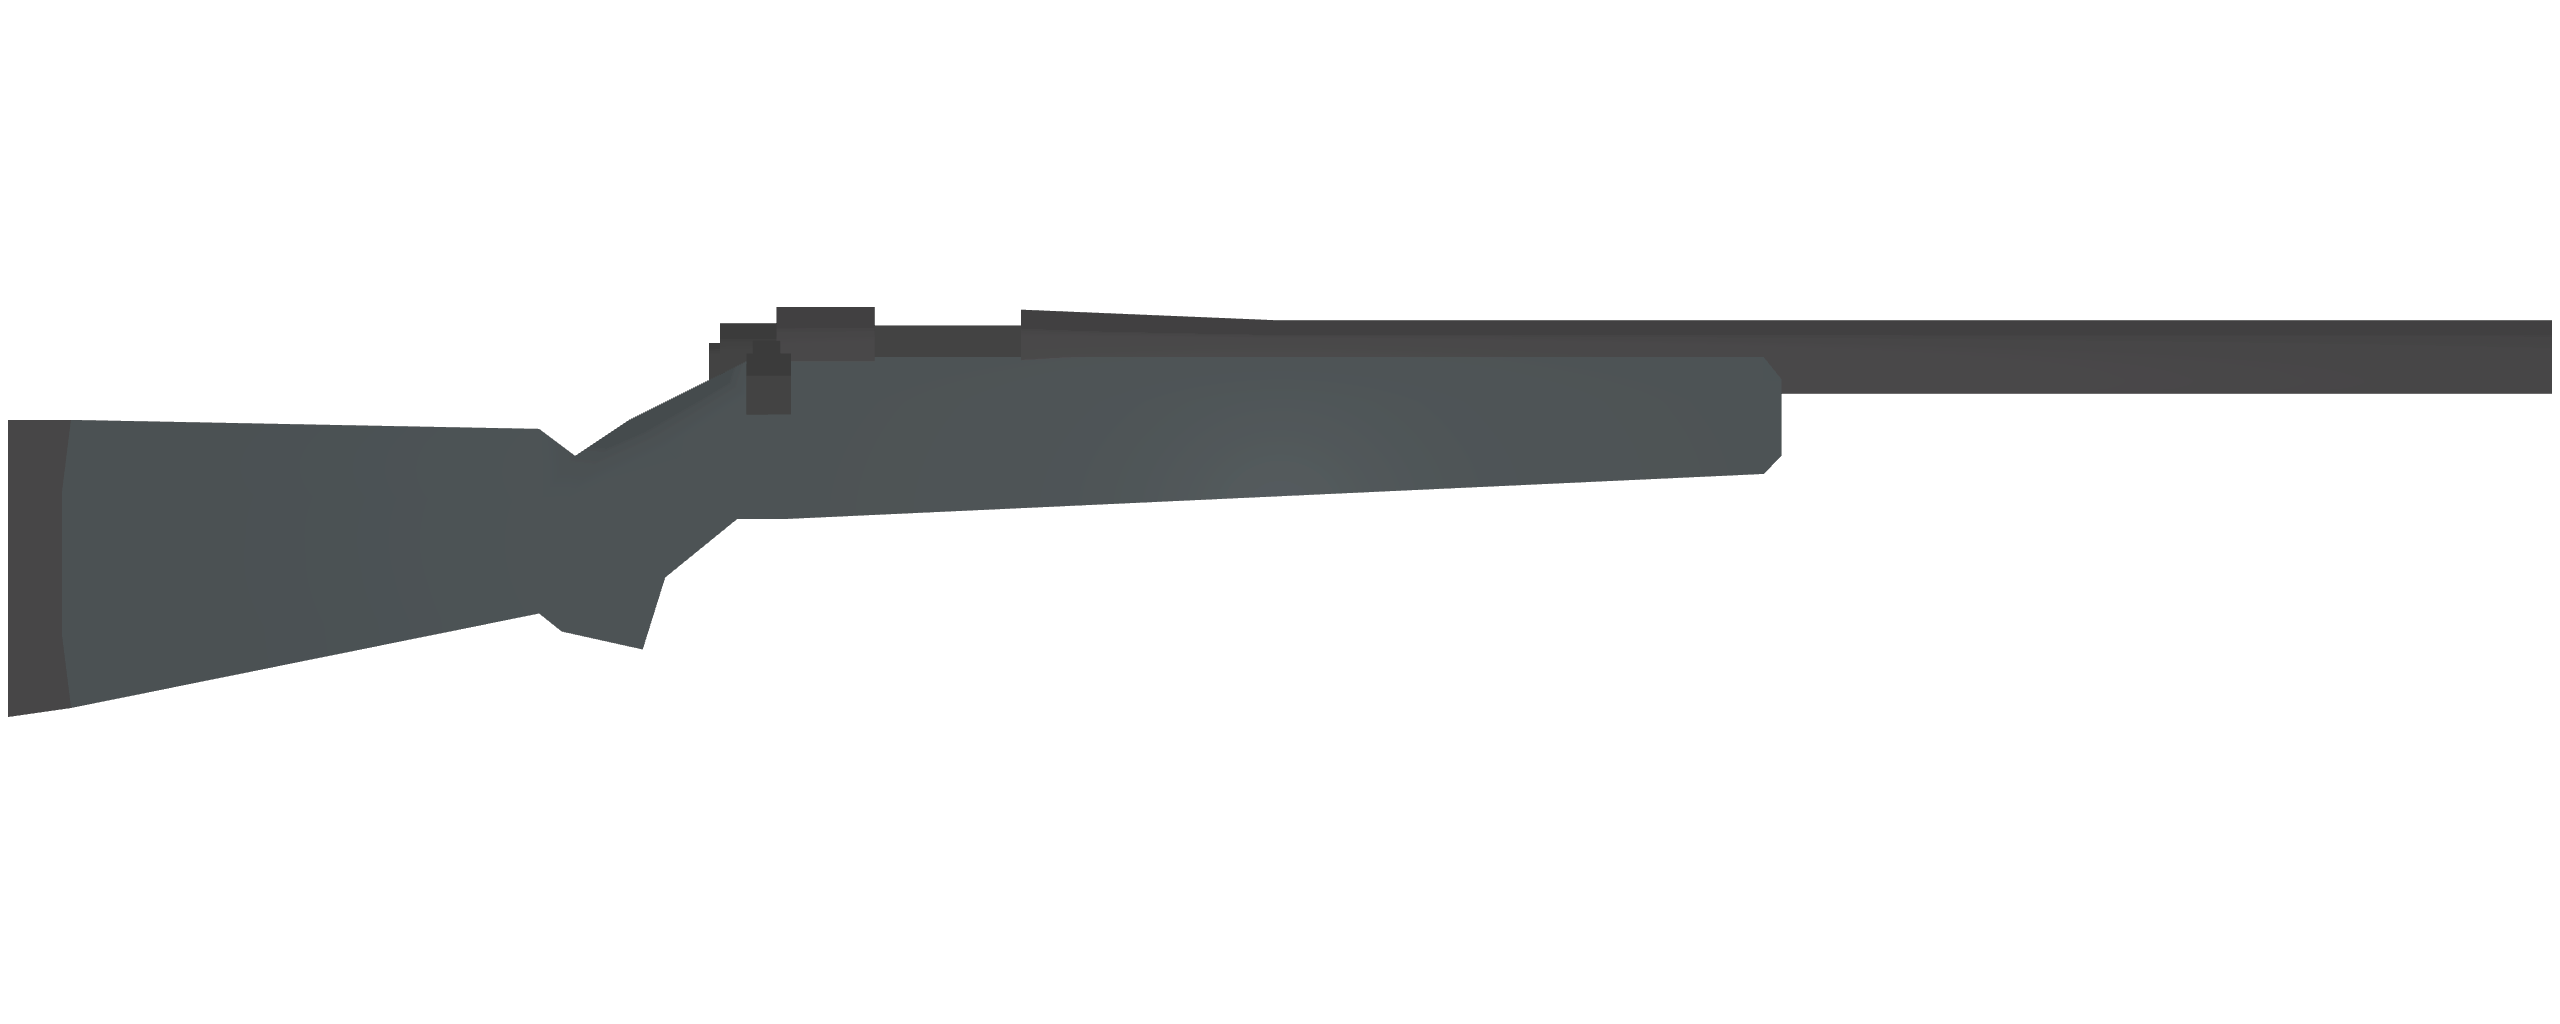 Unturned - All Weapons ID's for Uncreated Warfare Mods - USA Weapons - 4EBFB05